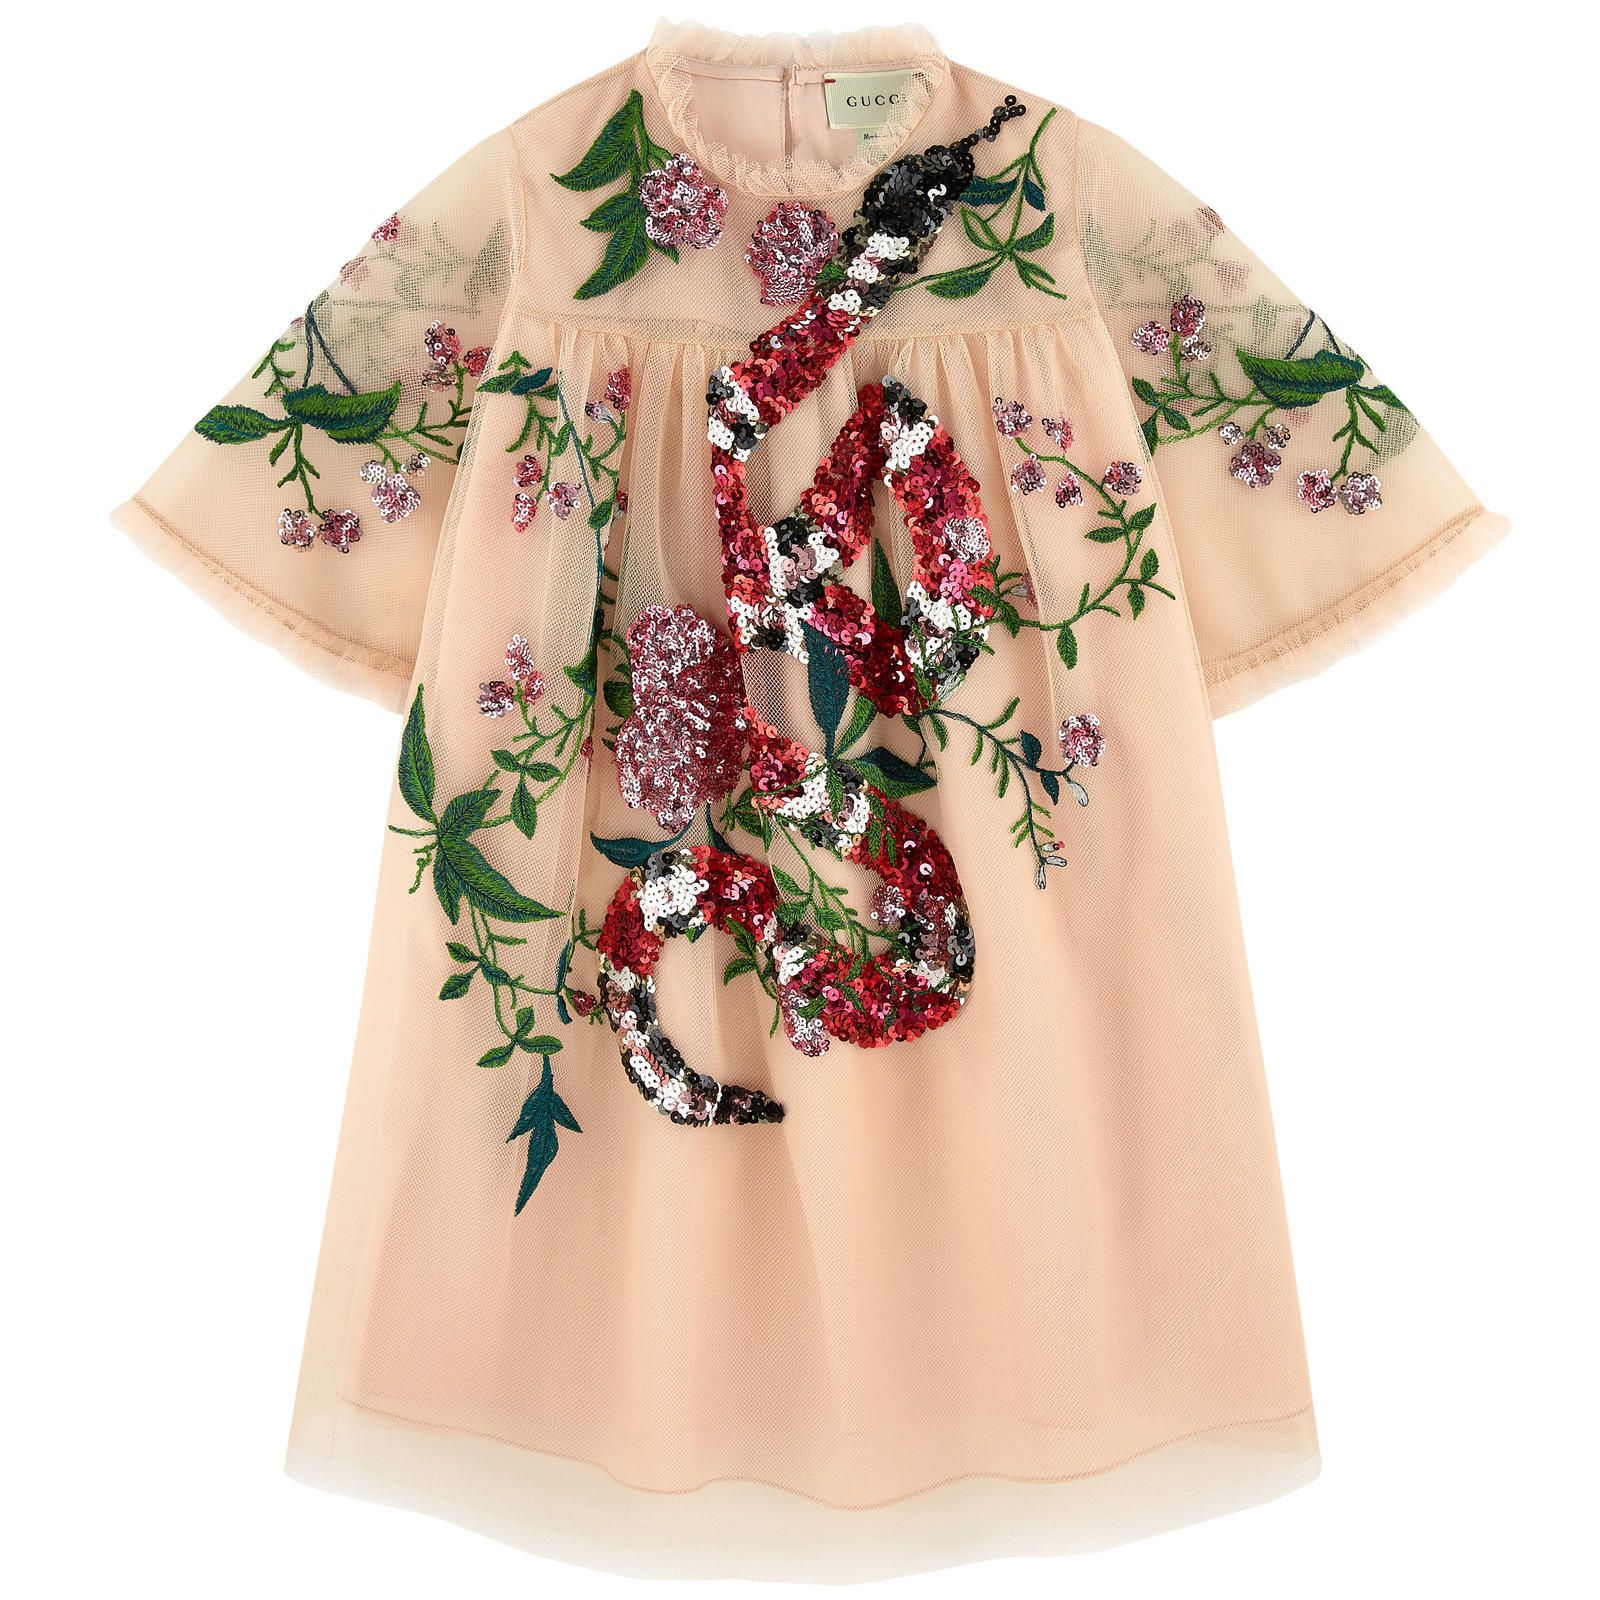 cfa2fa8cf Gucci - Embroidered dress with sequins | KID CLOTHES | Gucci kids ...